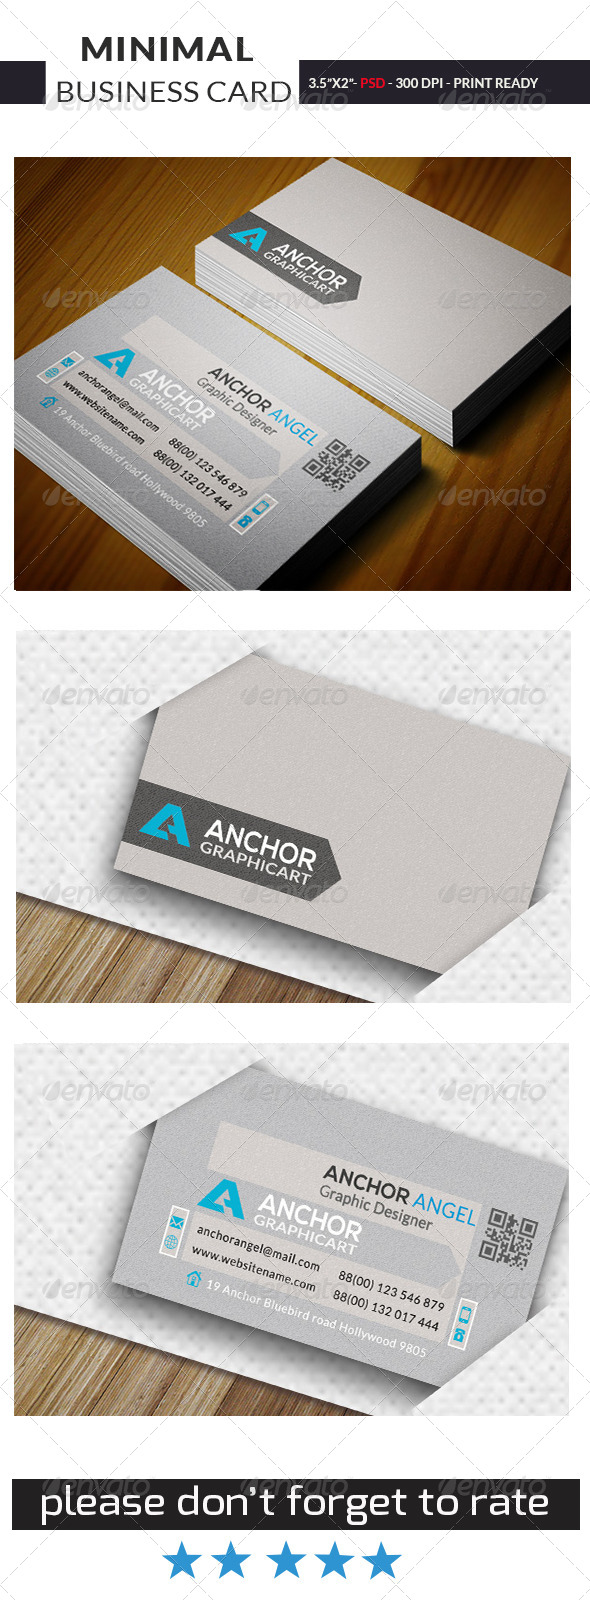 GraphicRiver Minimal Business Card 0010 7486137